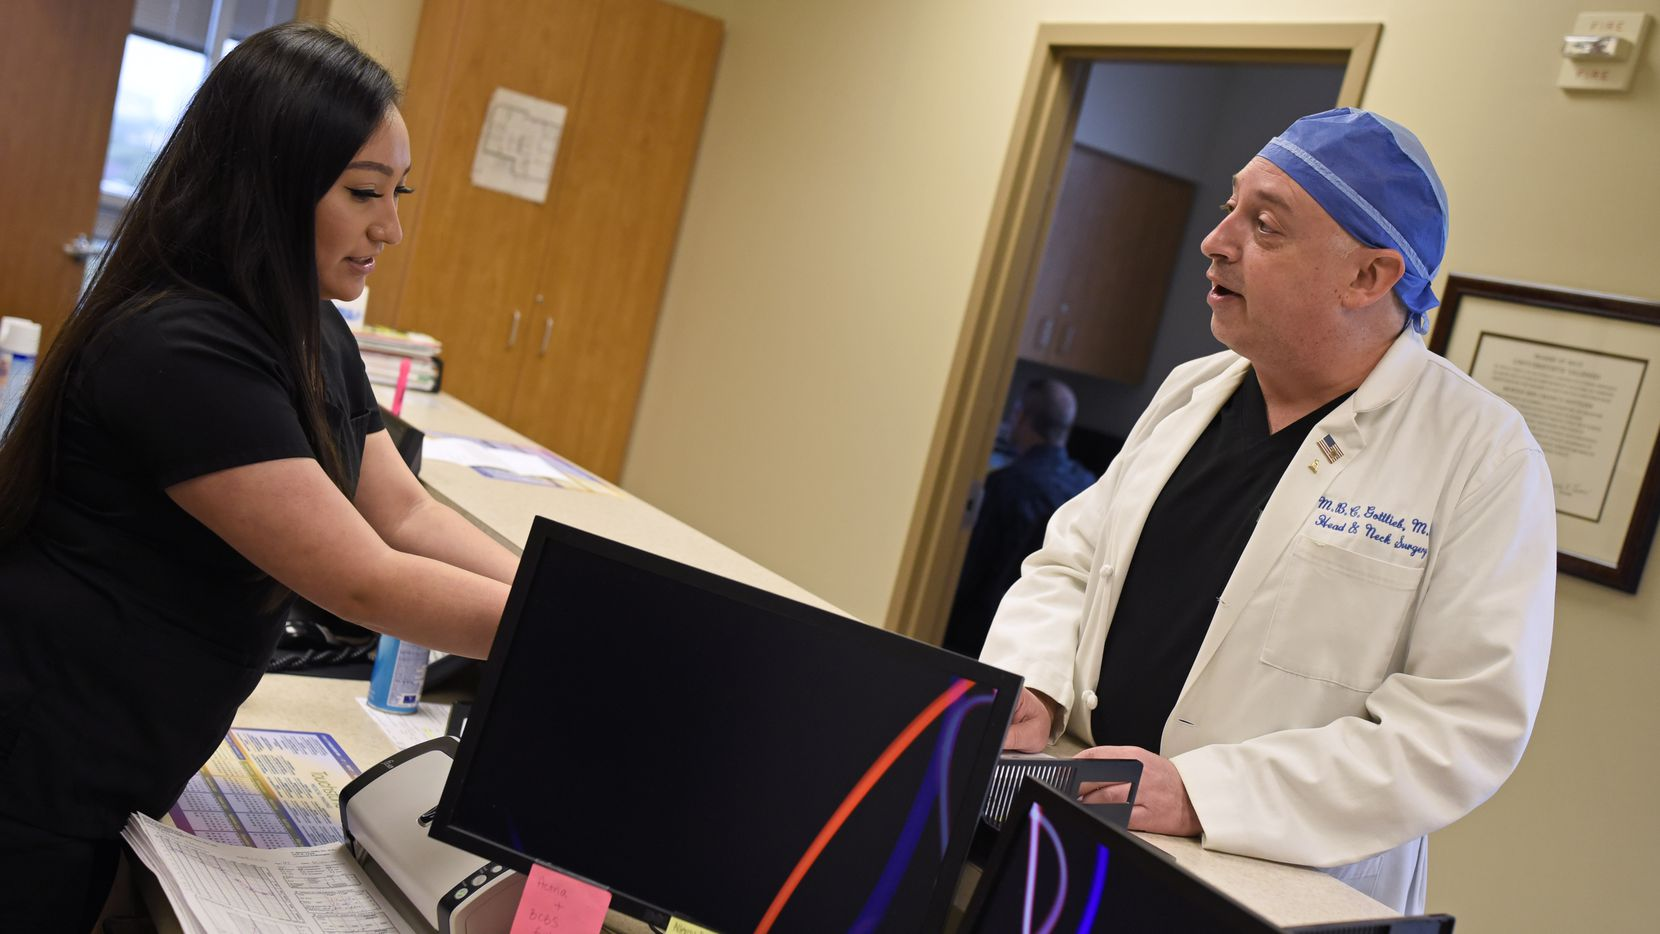 Medical assistant Ana Aguilar, left, speaks with Dr. Morris Gottlieb of North Dallas Ear, Nose & Throat in Richardson. Gottlieb is welcoming back patients after Texas loosened elective surgery rules, and he's adopted several additional safety procedures.